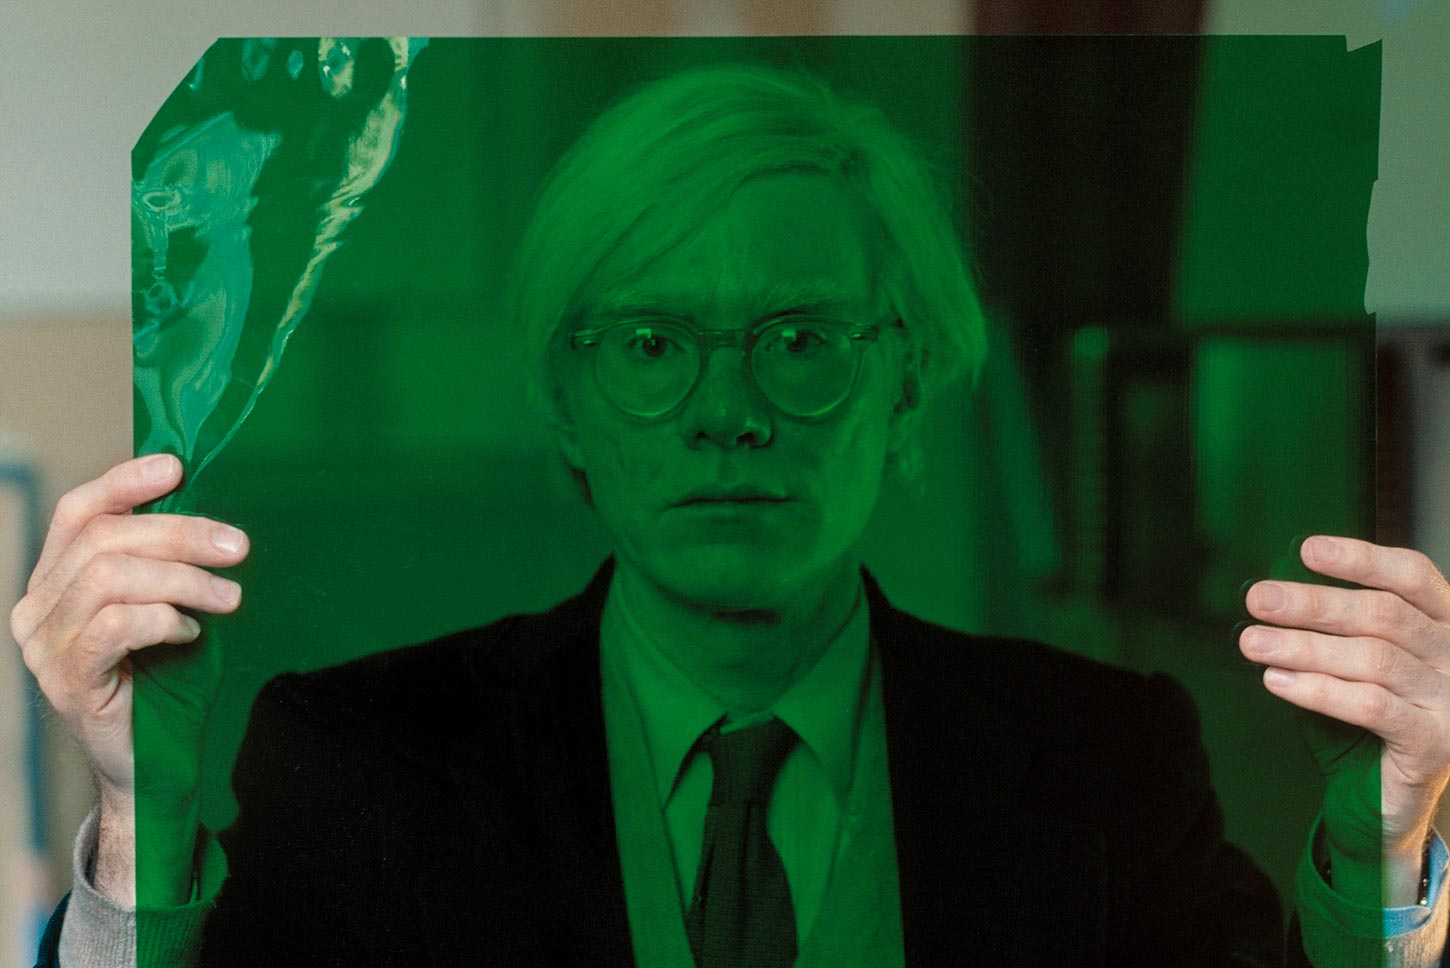 Andy Warhol in his